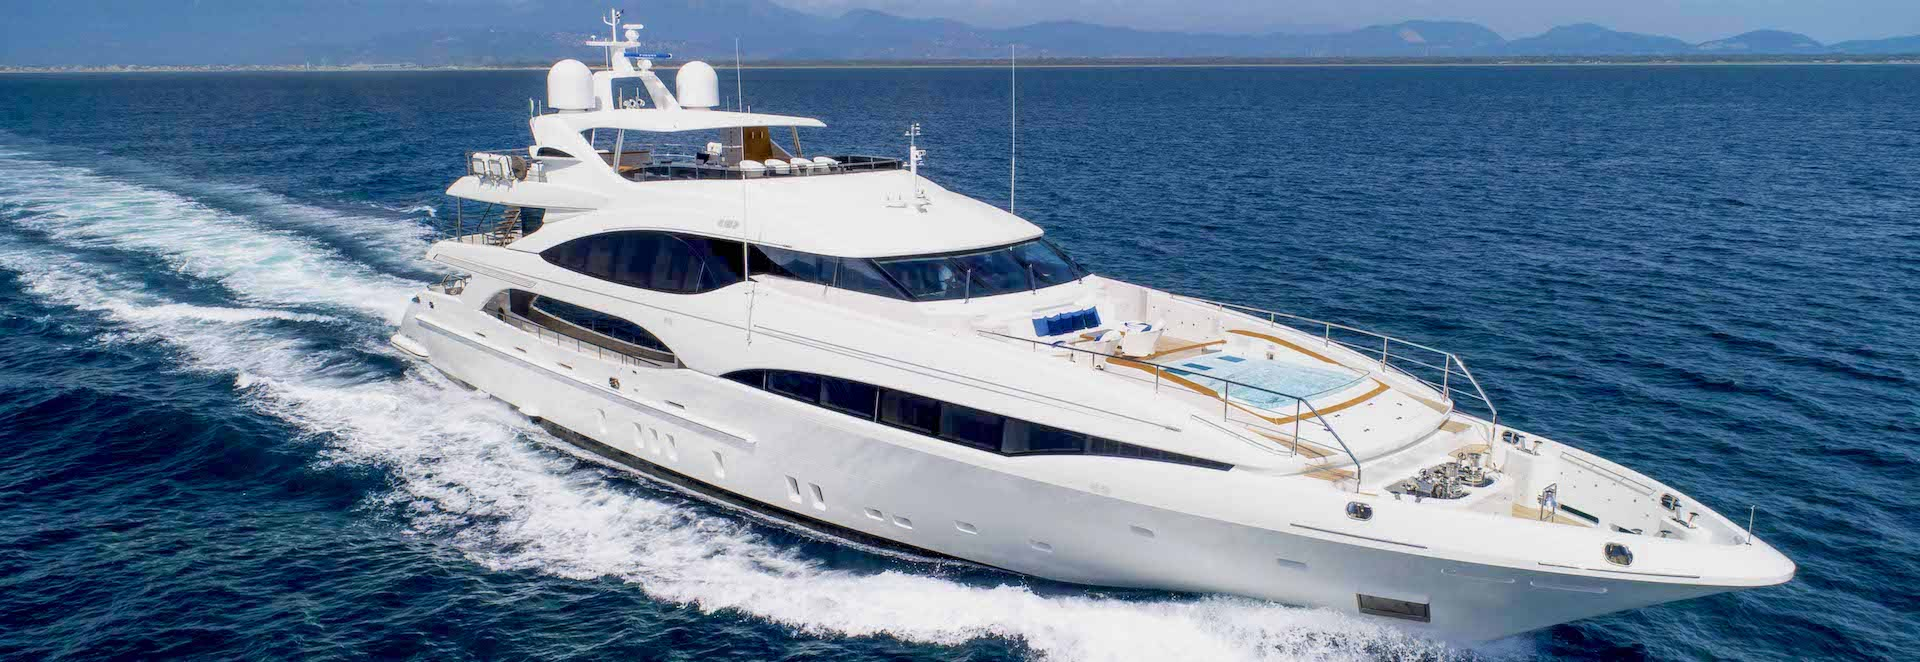 Superyacht Q95 – €3M Price Reduction on Mangusta for sale